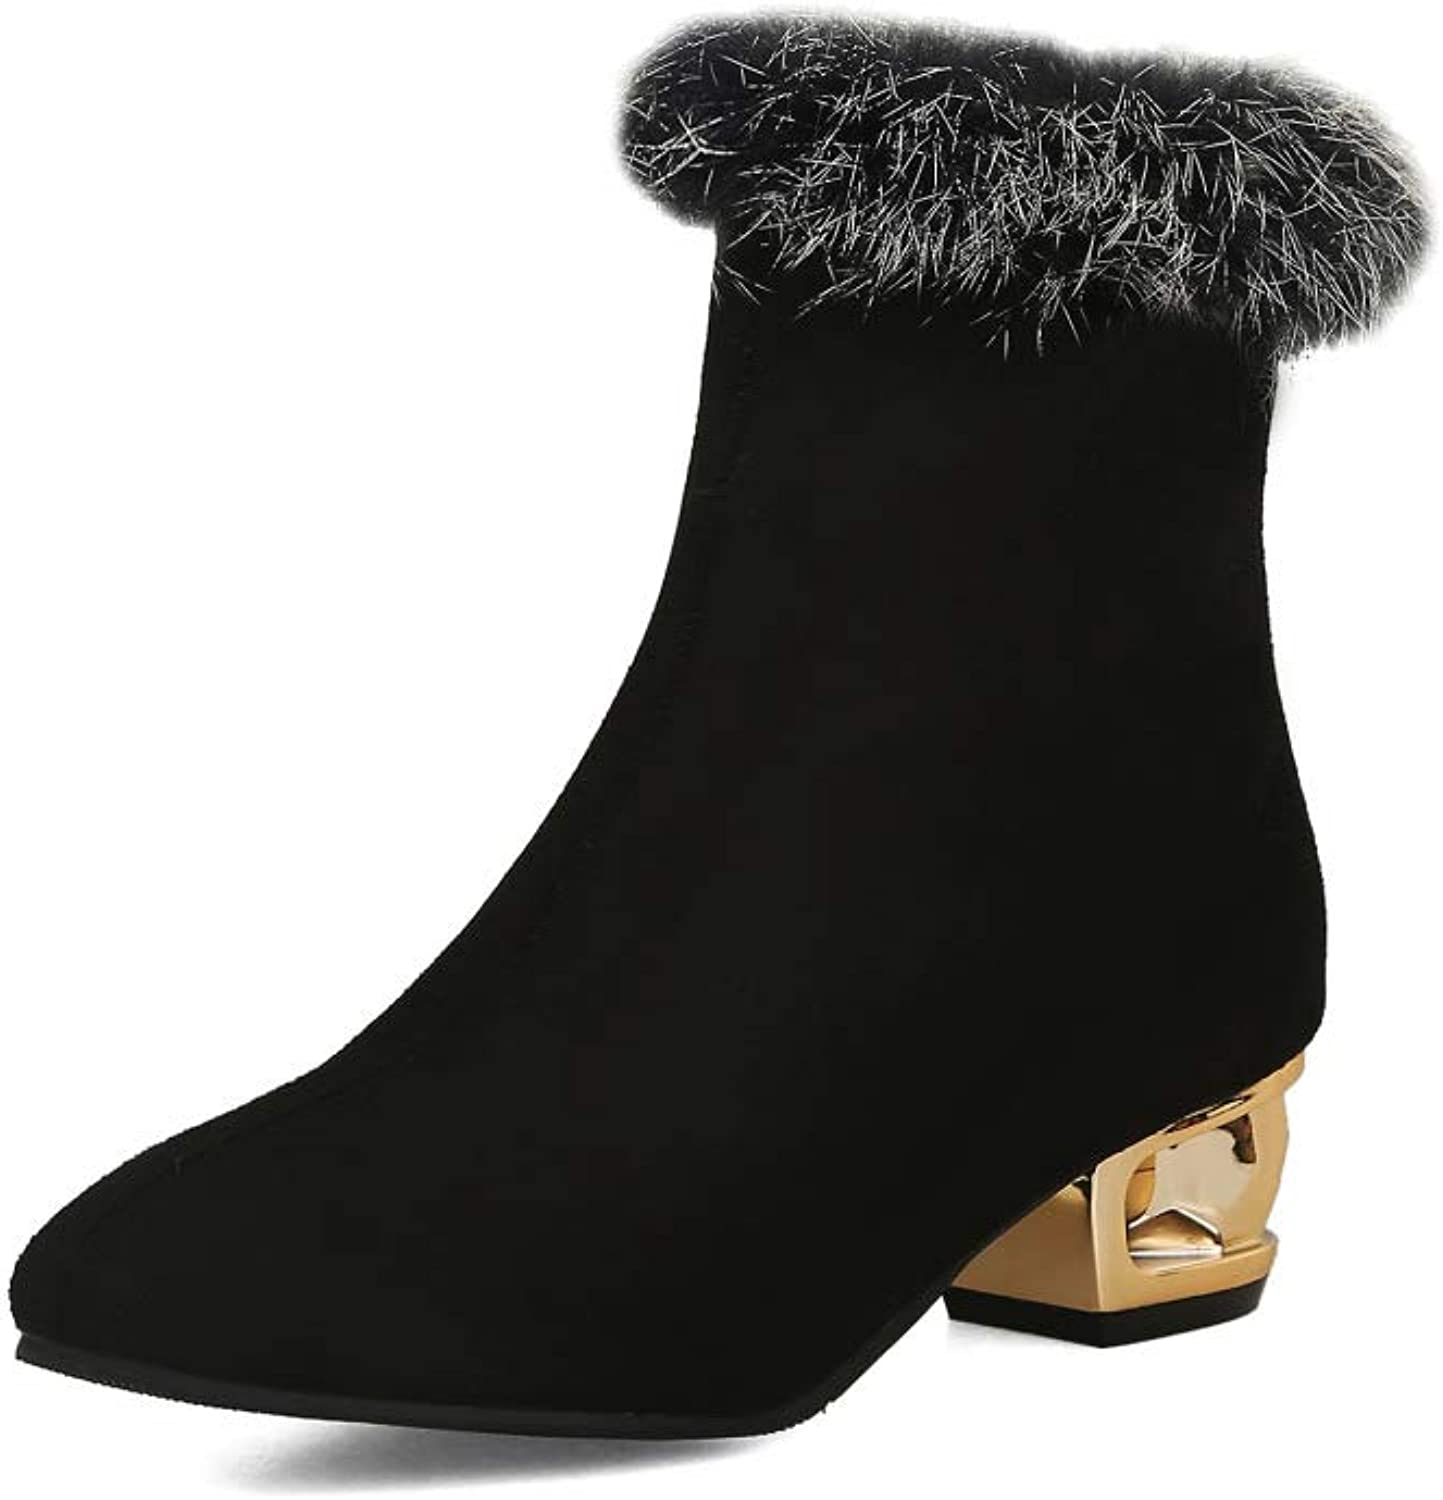 Women Simple Suede Ankle Boots 2018 Autumn Low Heel Plush Martin Boots Large Size 3348